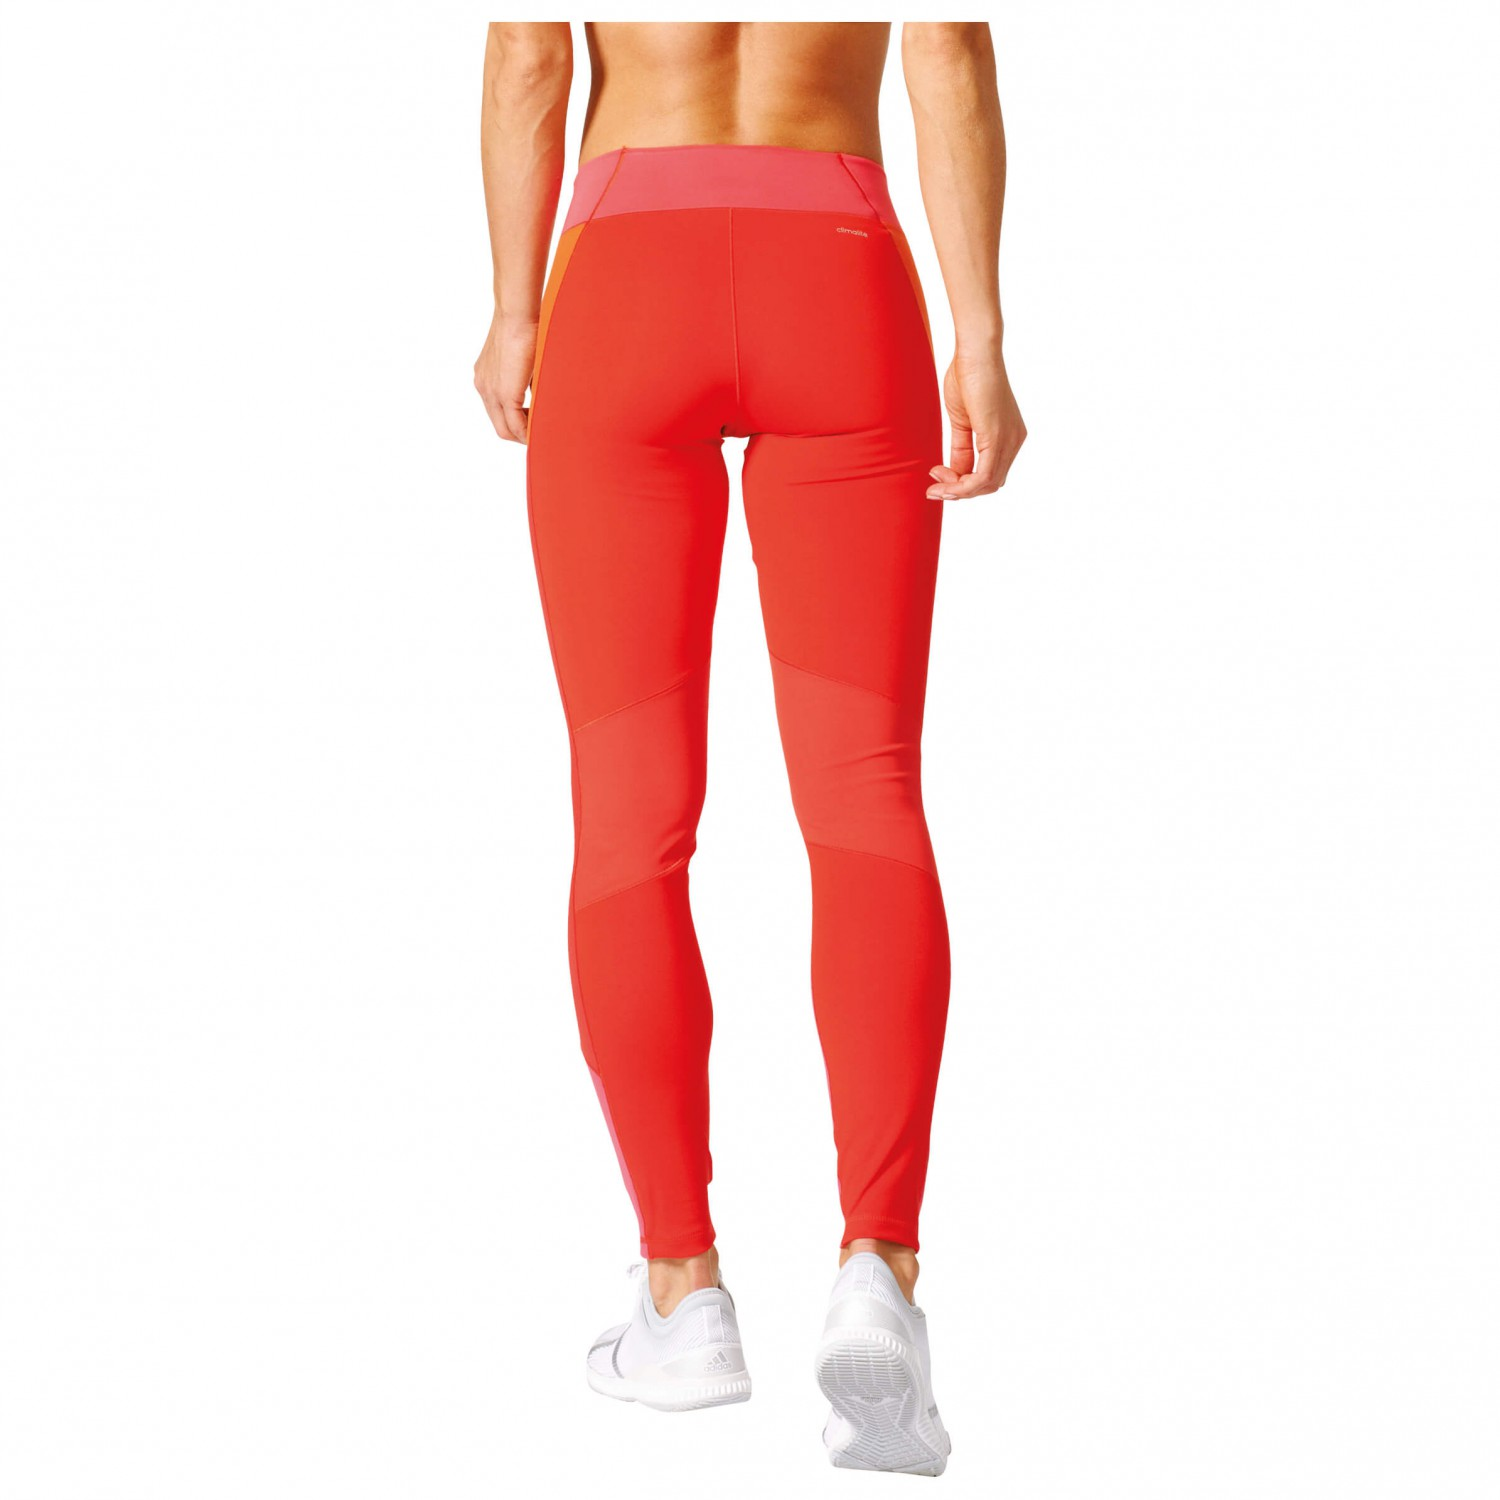 e710063104 Adidas Wow Drop 1 Tight - Tracksuit Bottoms Women's | Buy online ...